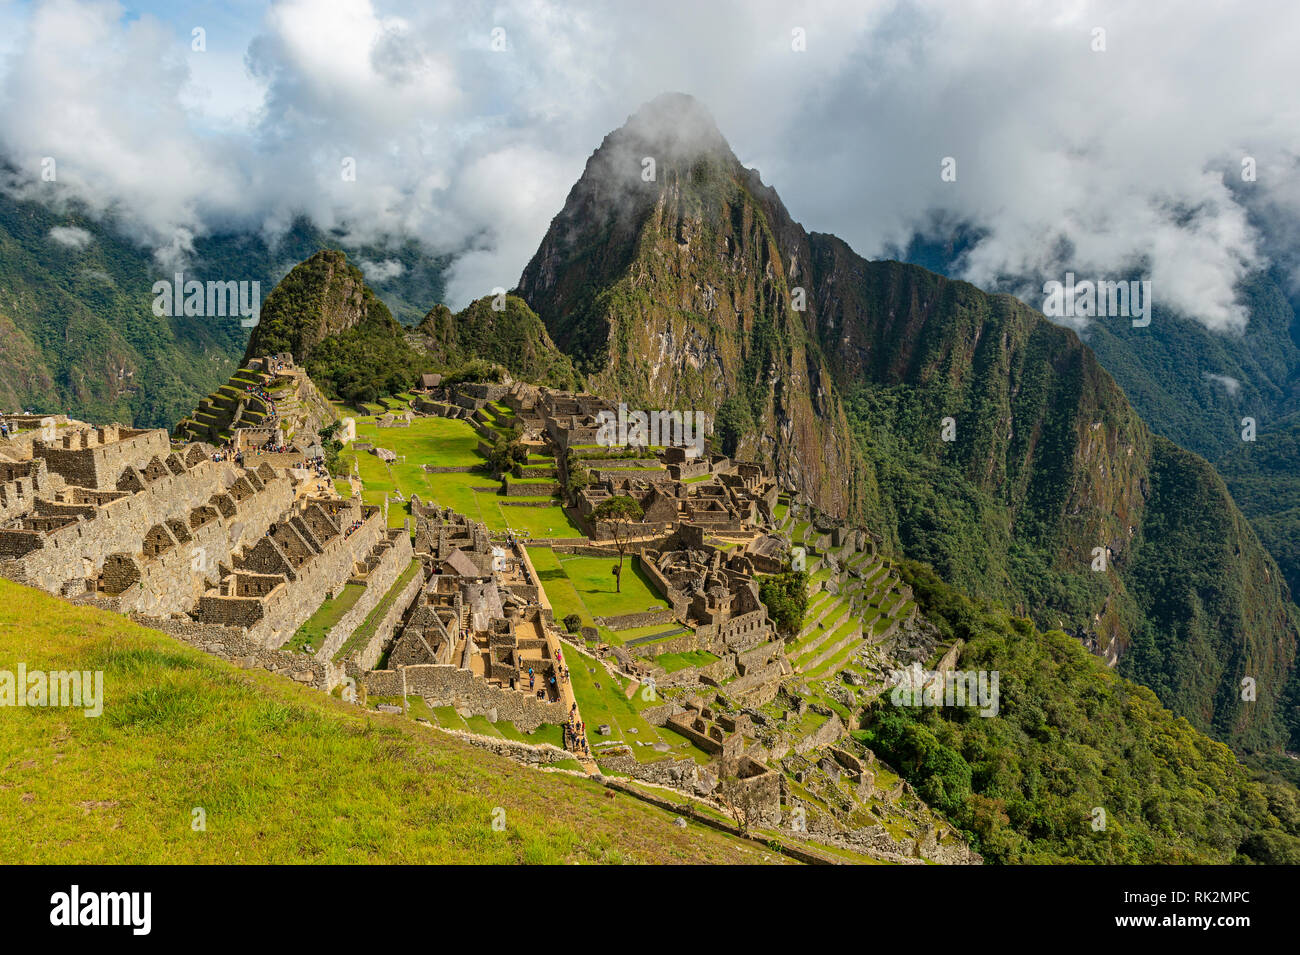 The lost Inca ruin city of Machu Picchu in the morning fog with its green terraced field and Huayna Picchu peak in the background near Cusco, Peru. - Stock Image